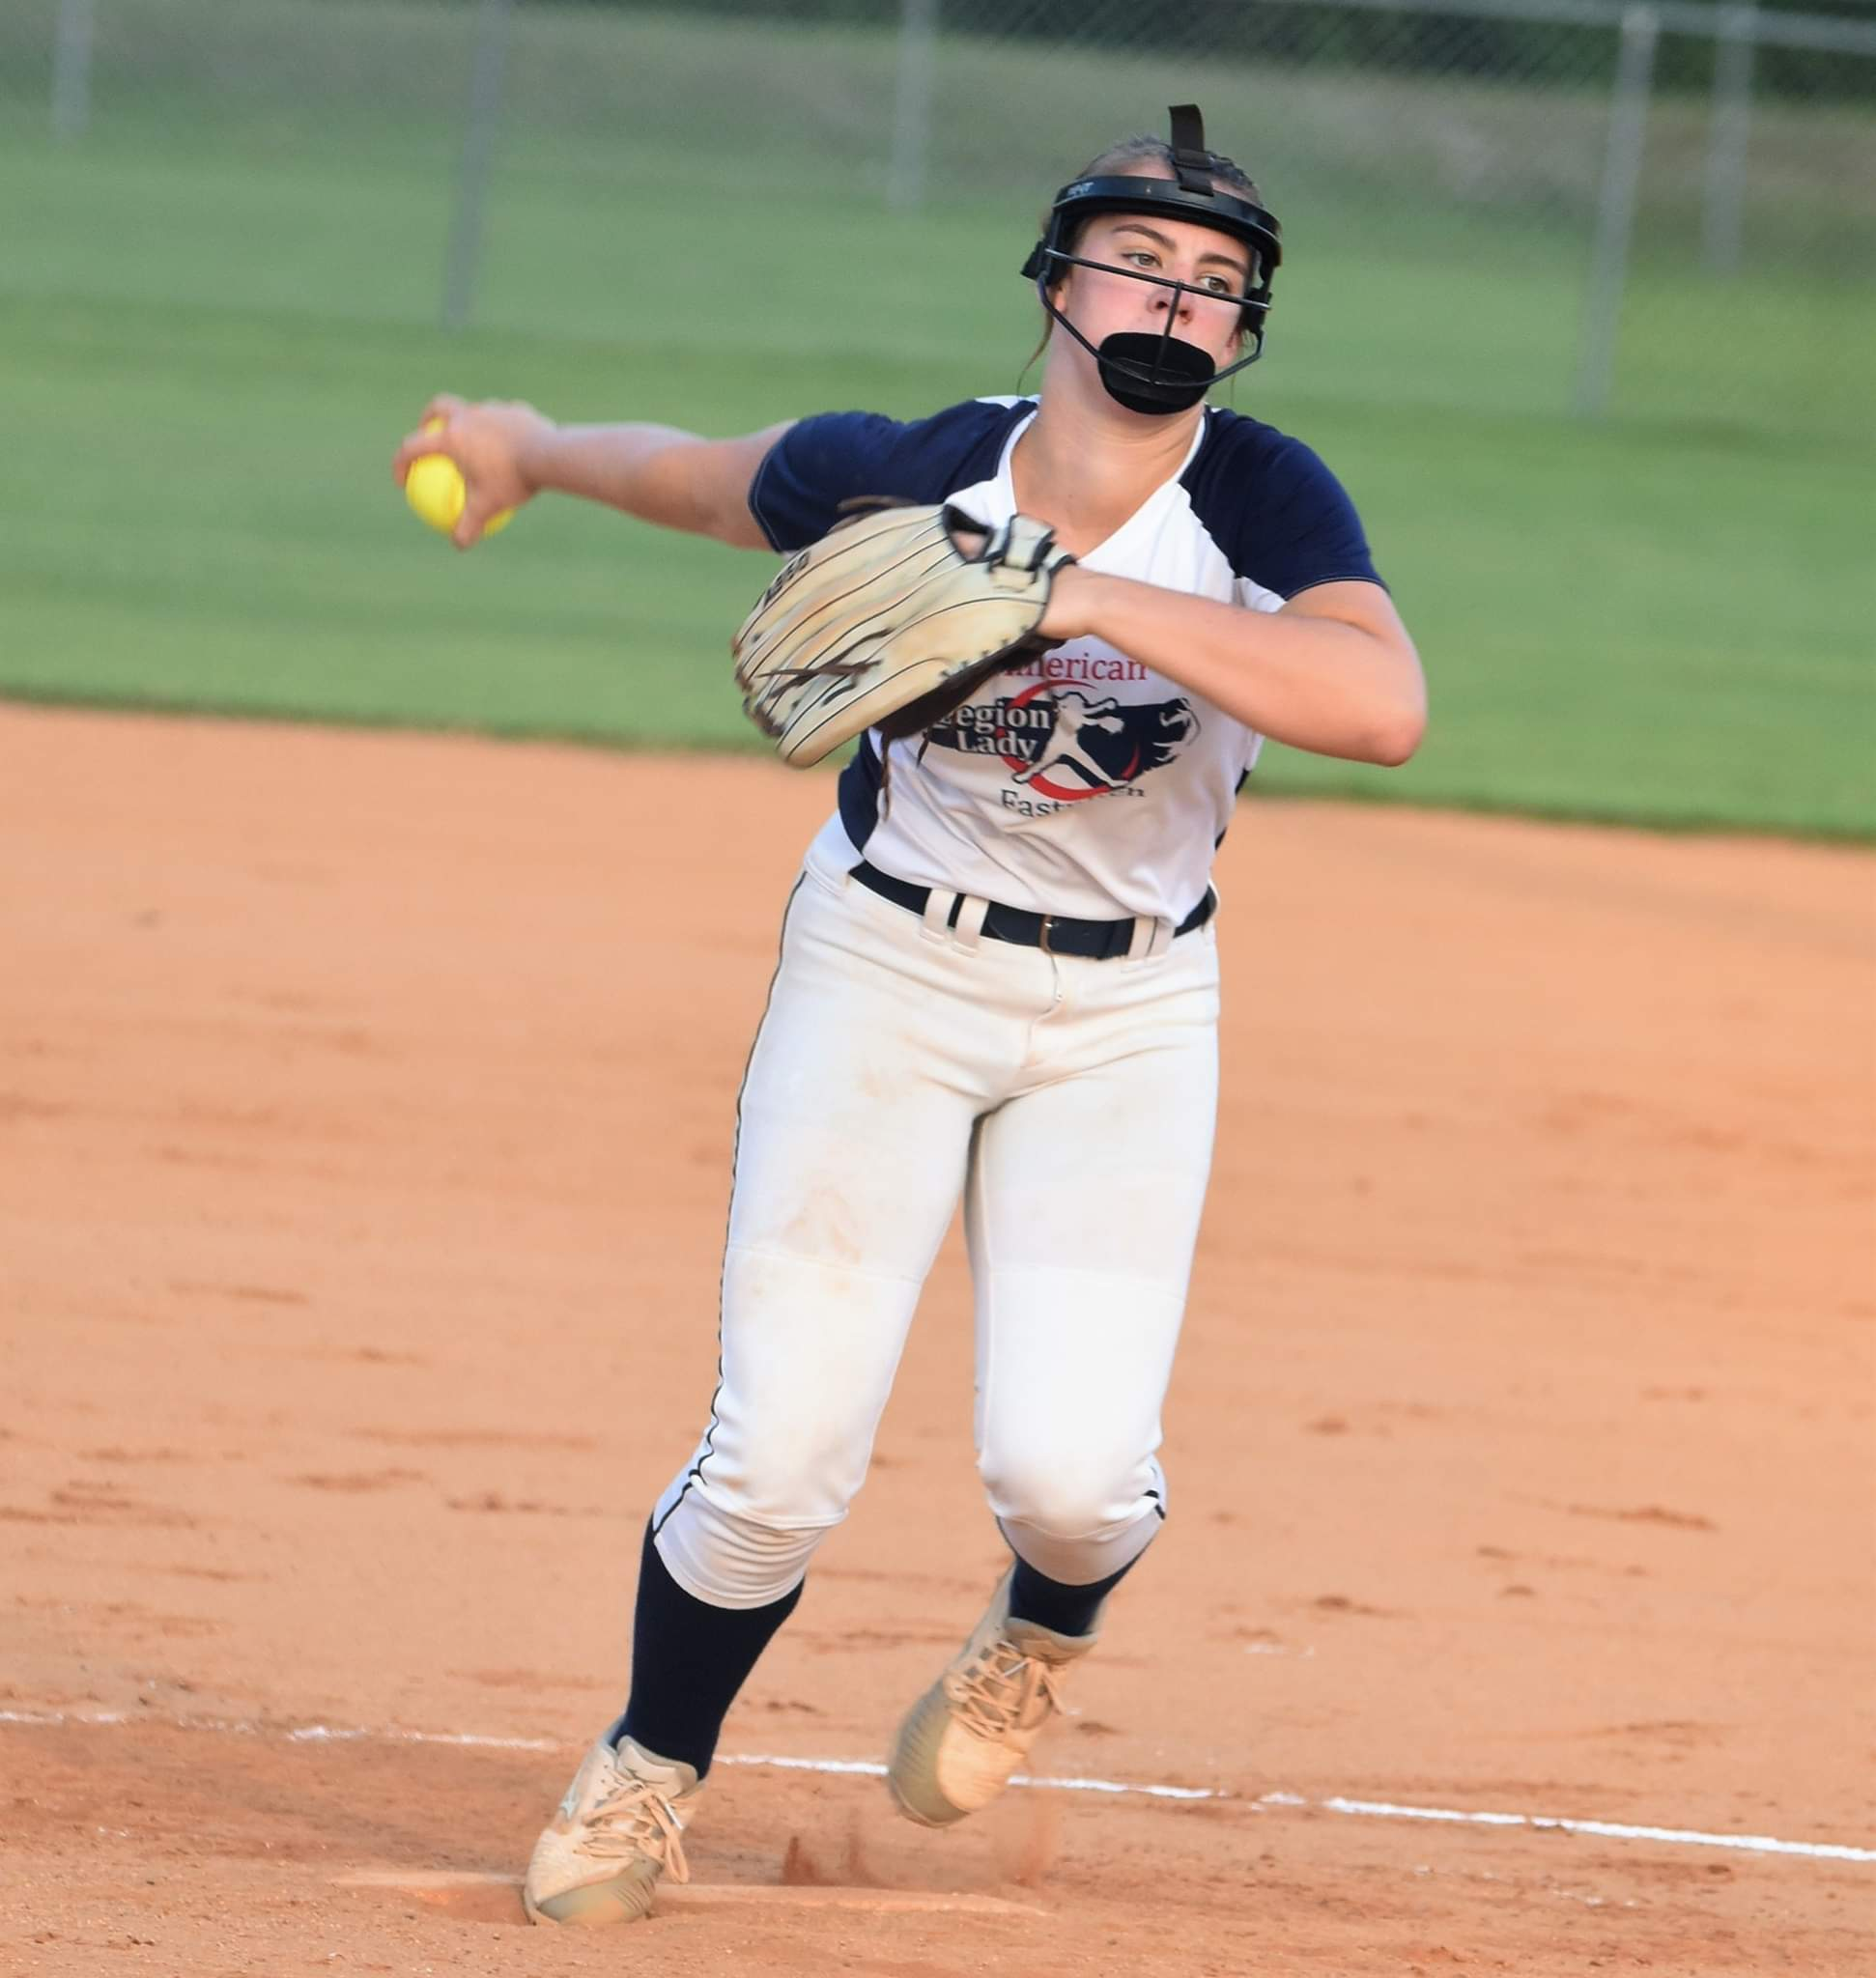 Kinston Post 43's Logan Lucas looks to help the team continue its strong start in the inaugural softball season, which continues today. Kinston Post 43 is 5-1 heading into a doubleheader with Wilmington Post 545. Photo by William 'Bud' Hardy / Neuse News